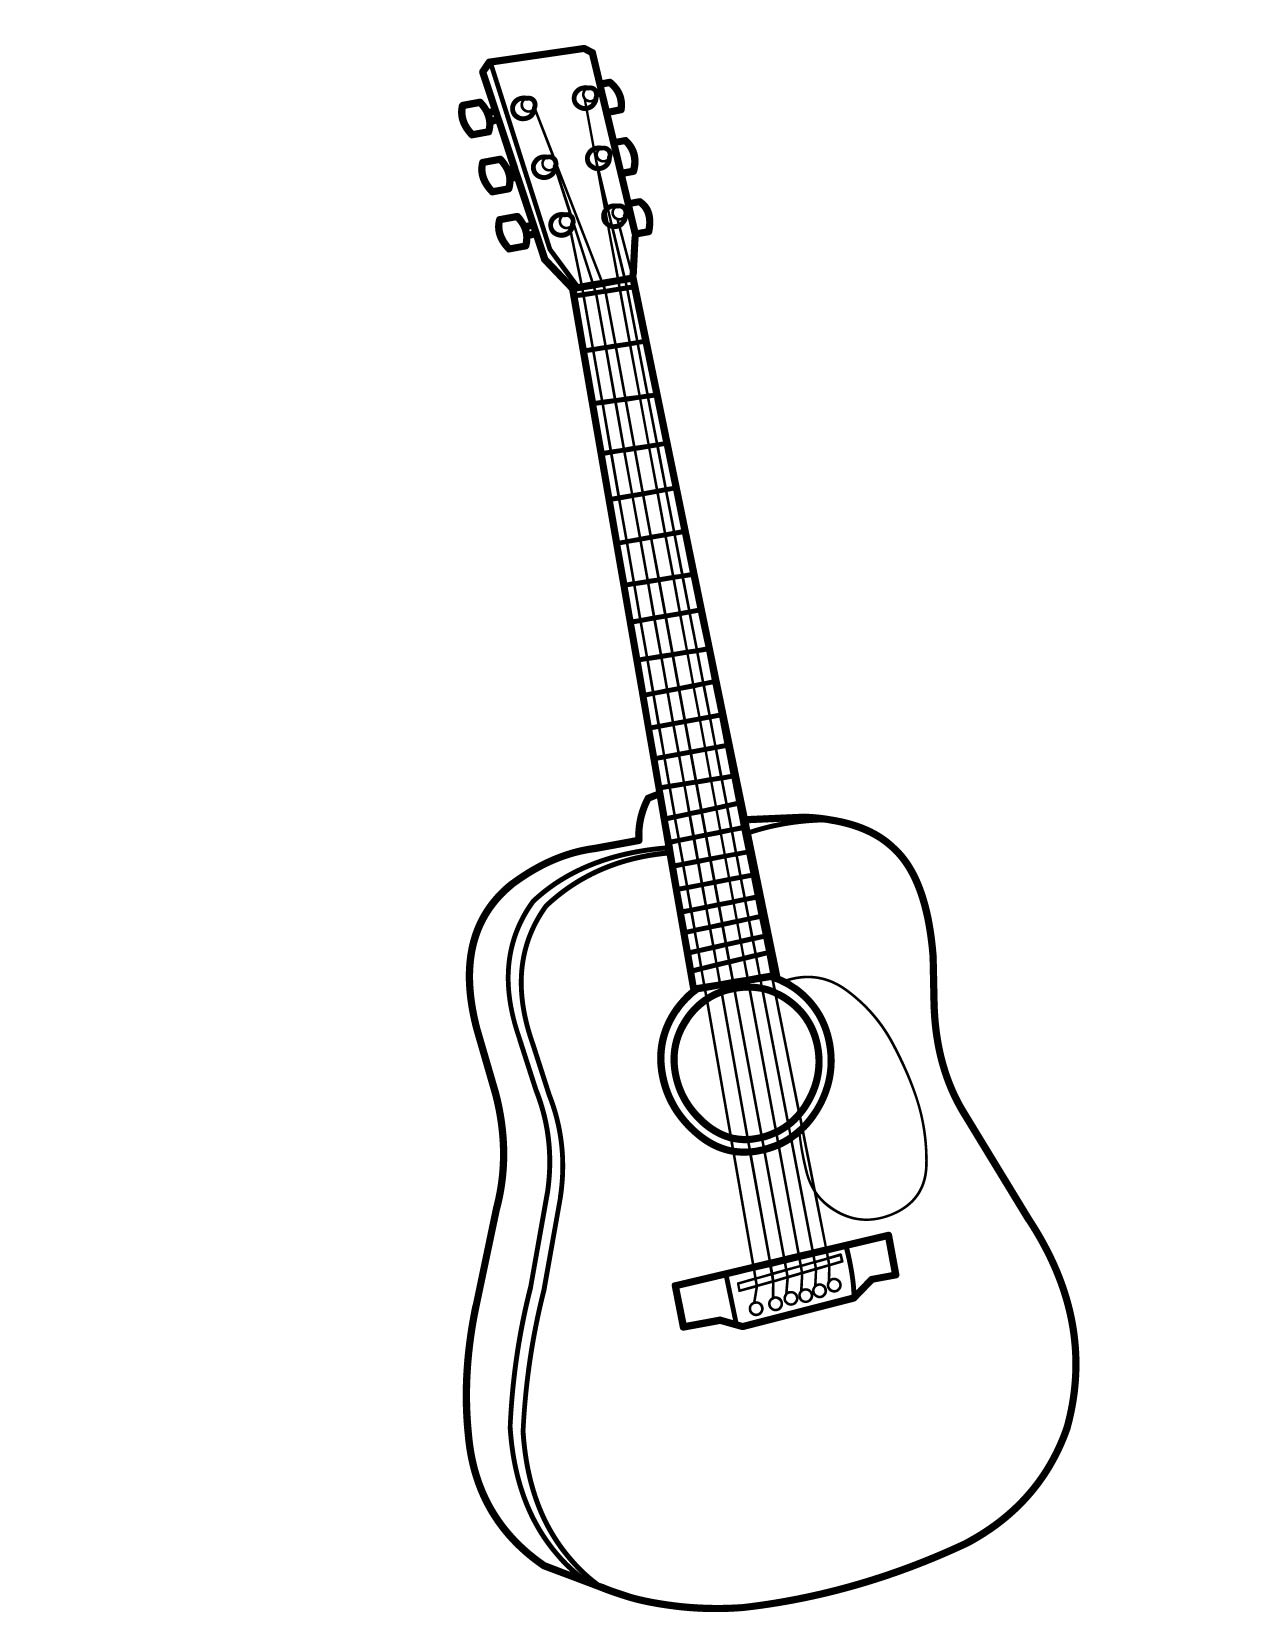 Uncategorized Musical Instrument Coloring Pages musical instruments coloring pages music pages